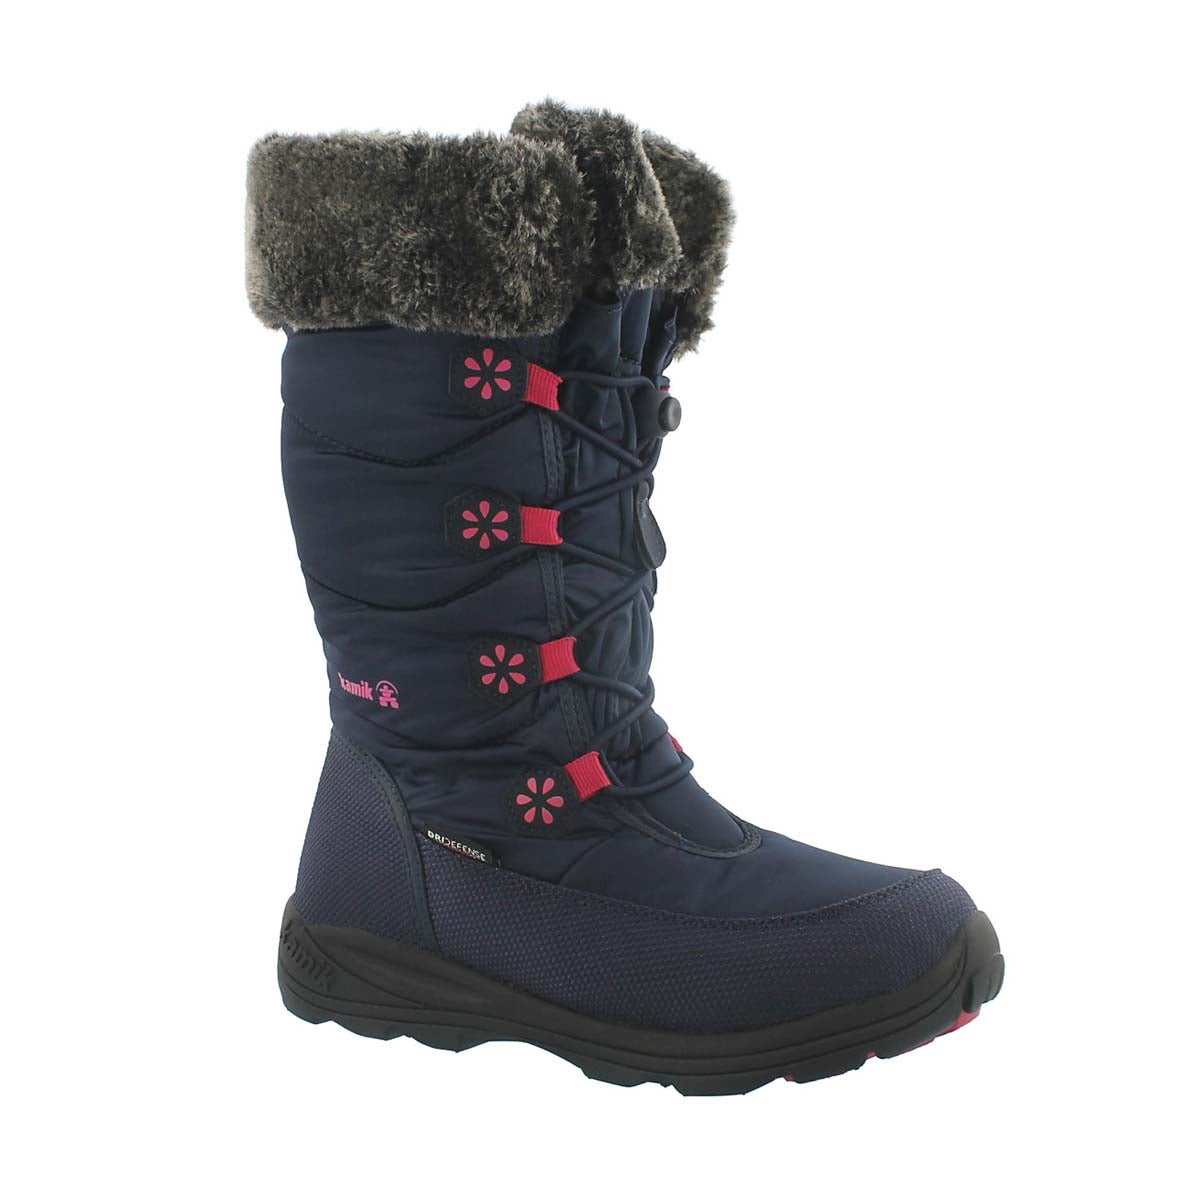 Girls' AVA navy tall bungee winter boots